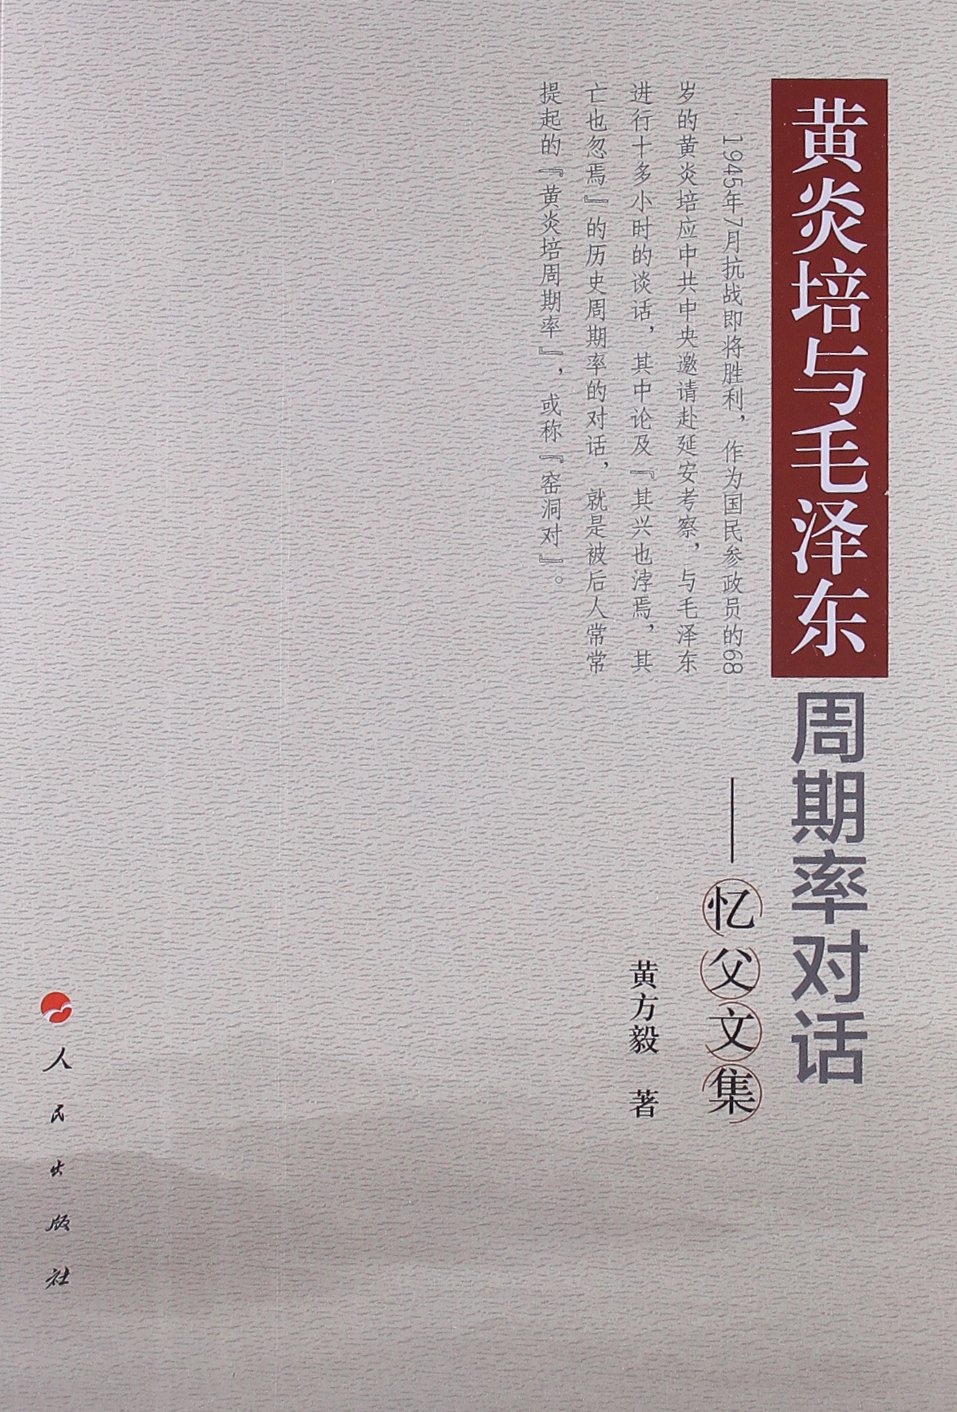 Recalling Father's Collected Works: Dialogue Between Huang Yanpei And Mao Zedong's Cycle Rate